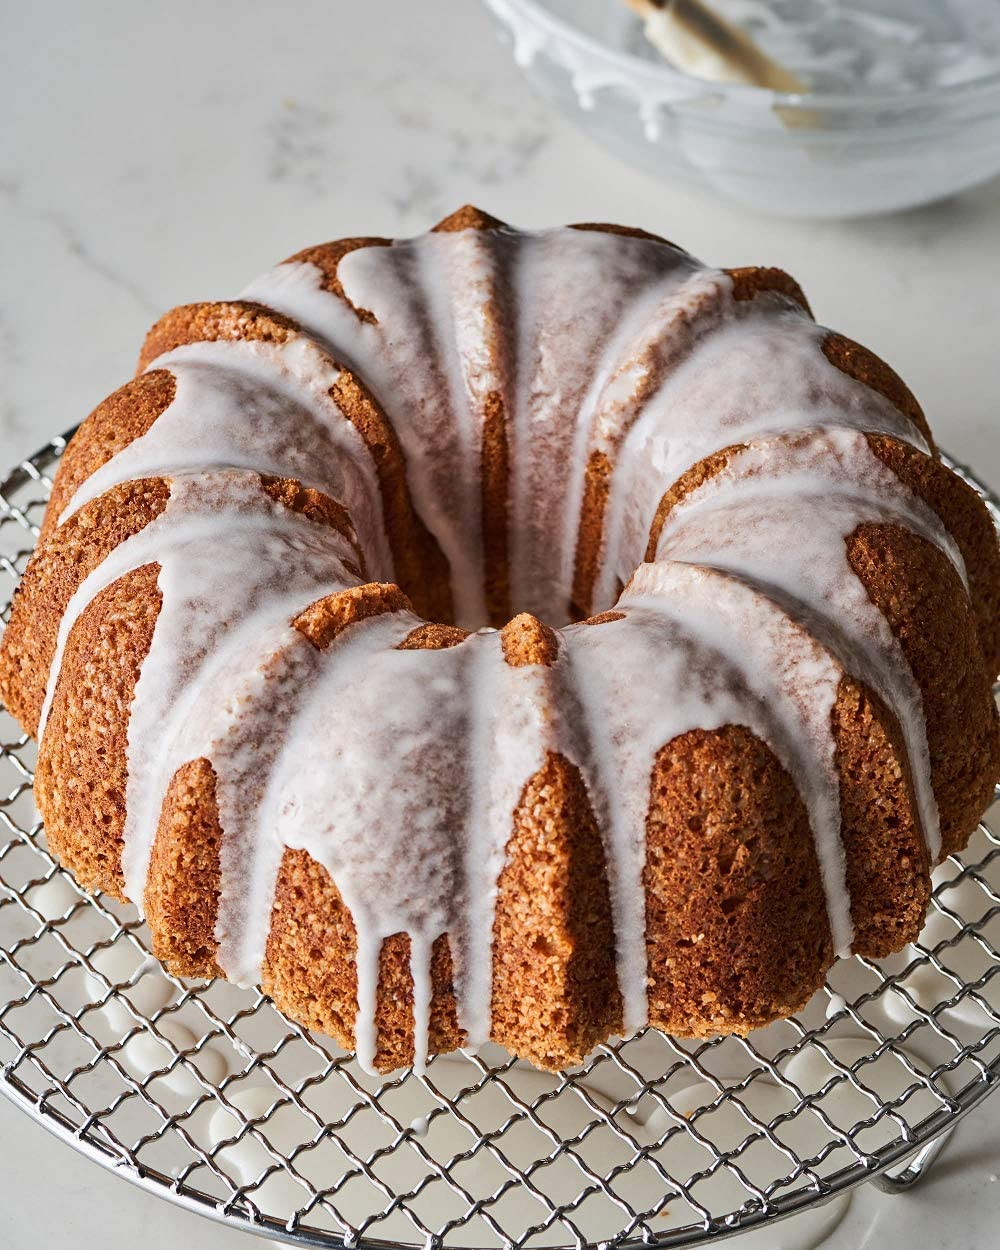 gray wavy, 9.6 x 4 Non-Stick Bake Tube Quality Bundt Pan 9.6 Fluted Bakeries and Catering Kitchen For Home